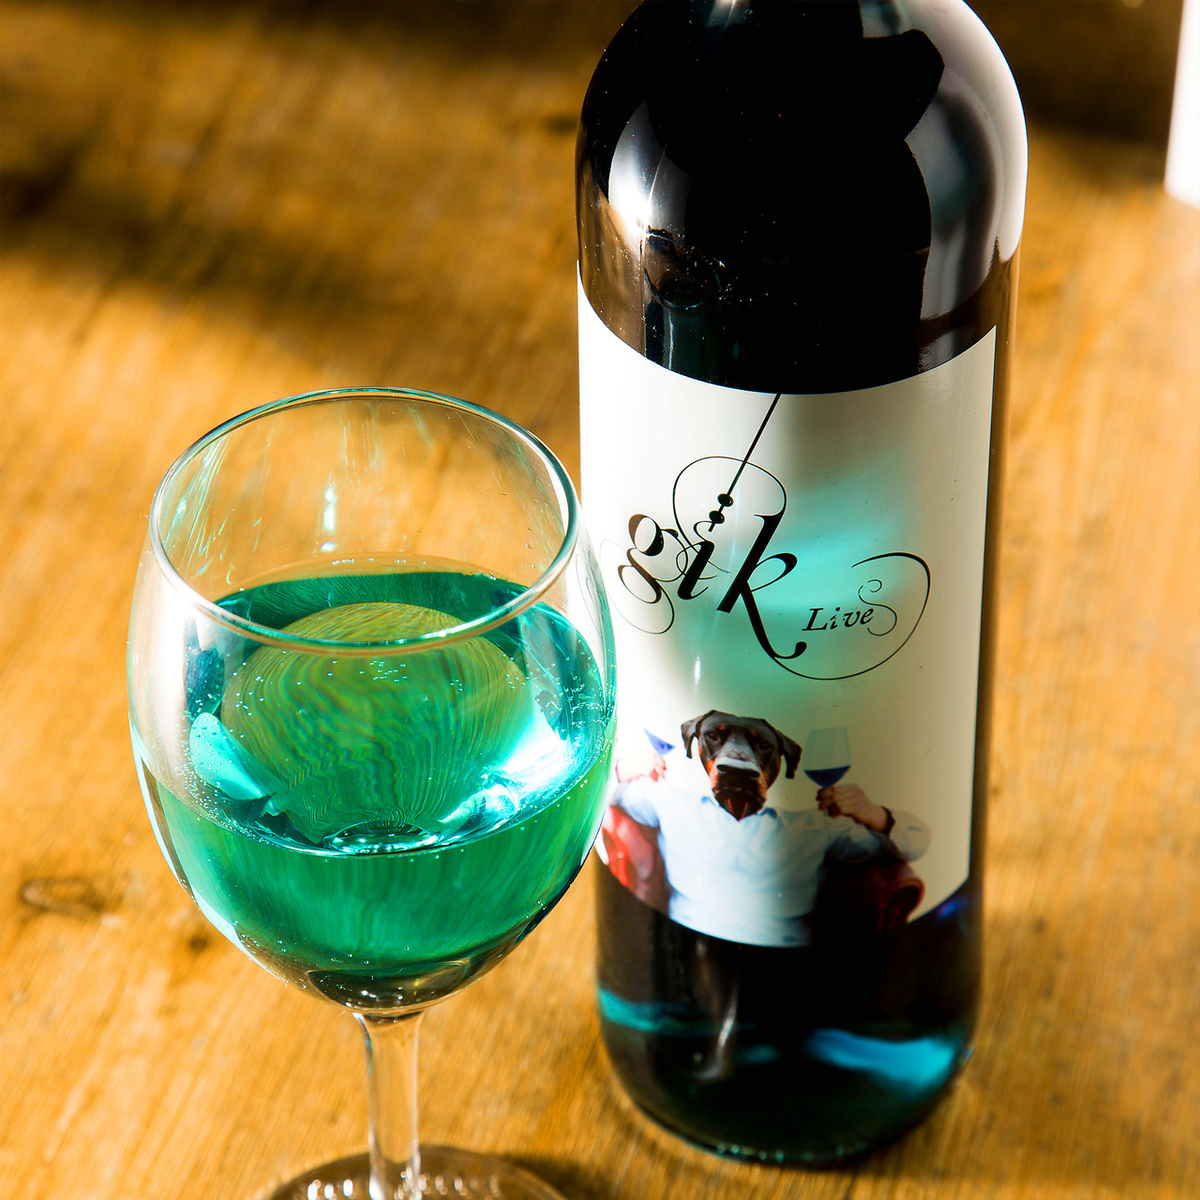 The world 's first blue wine which became a topic all over the world finally landed in Sengawa w The best wine is prepared for a trendy installing ☆ ☆